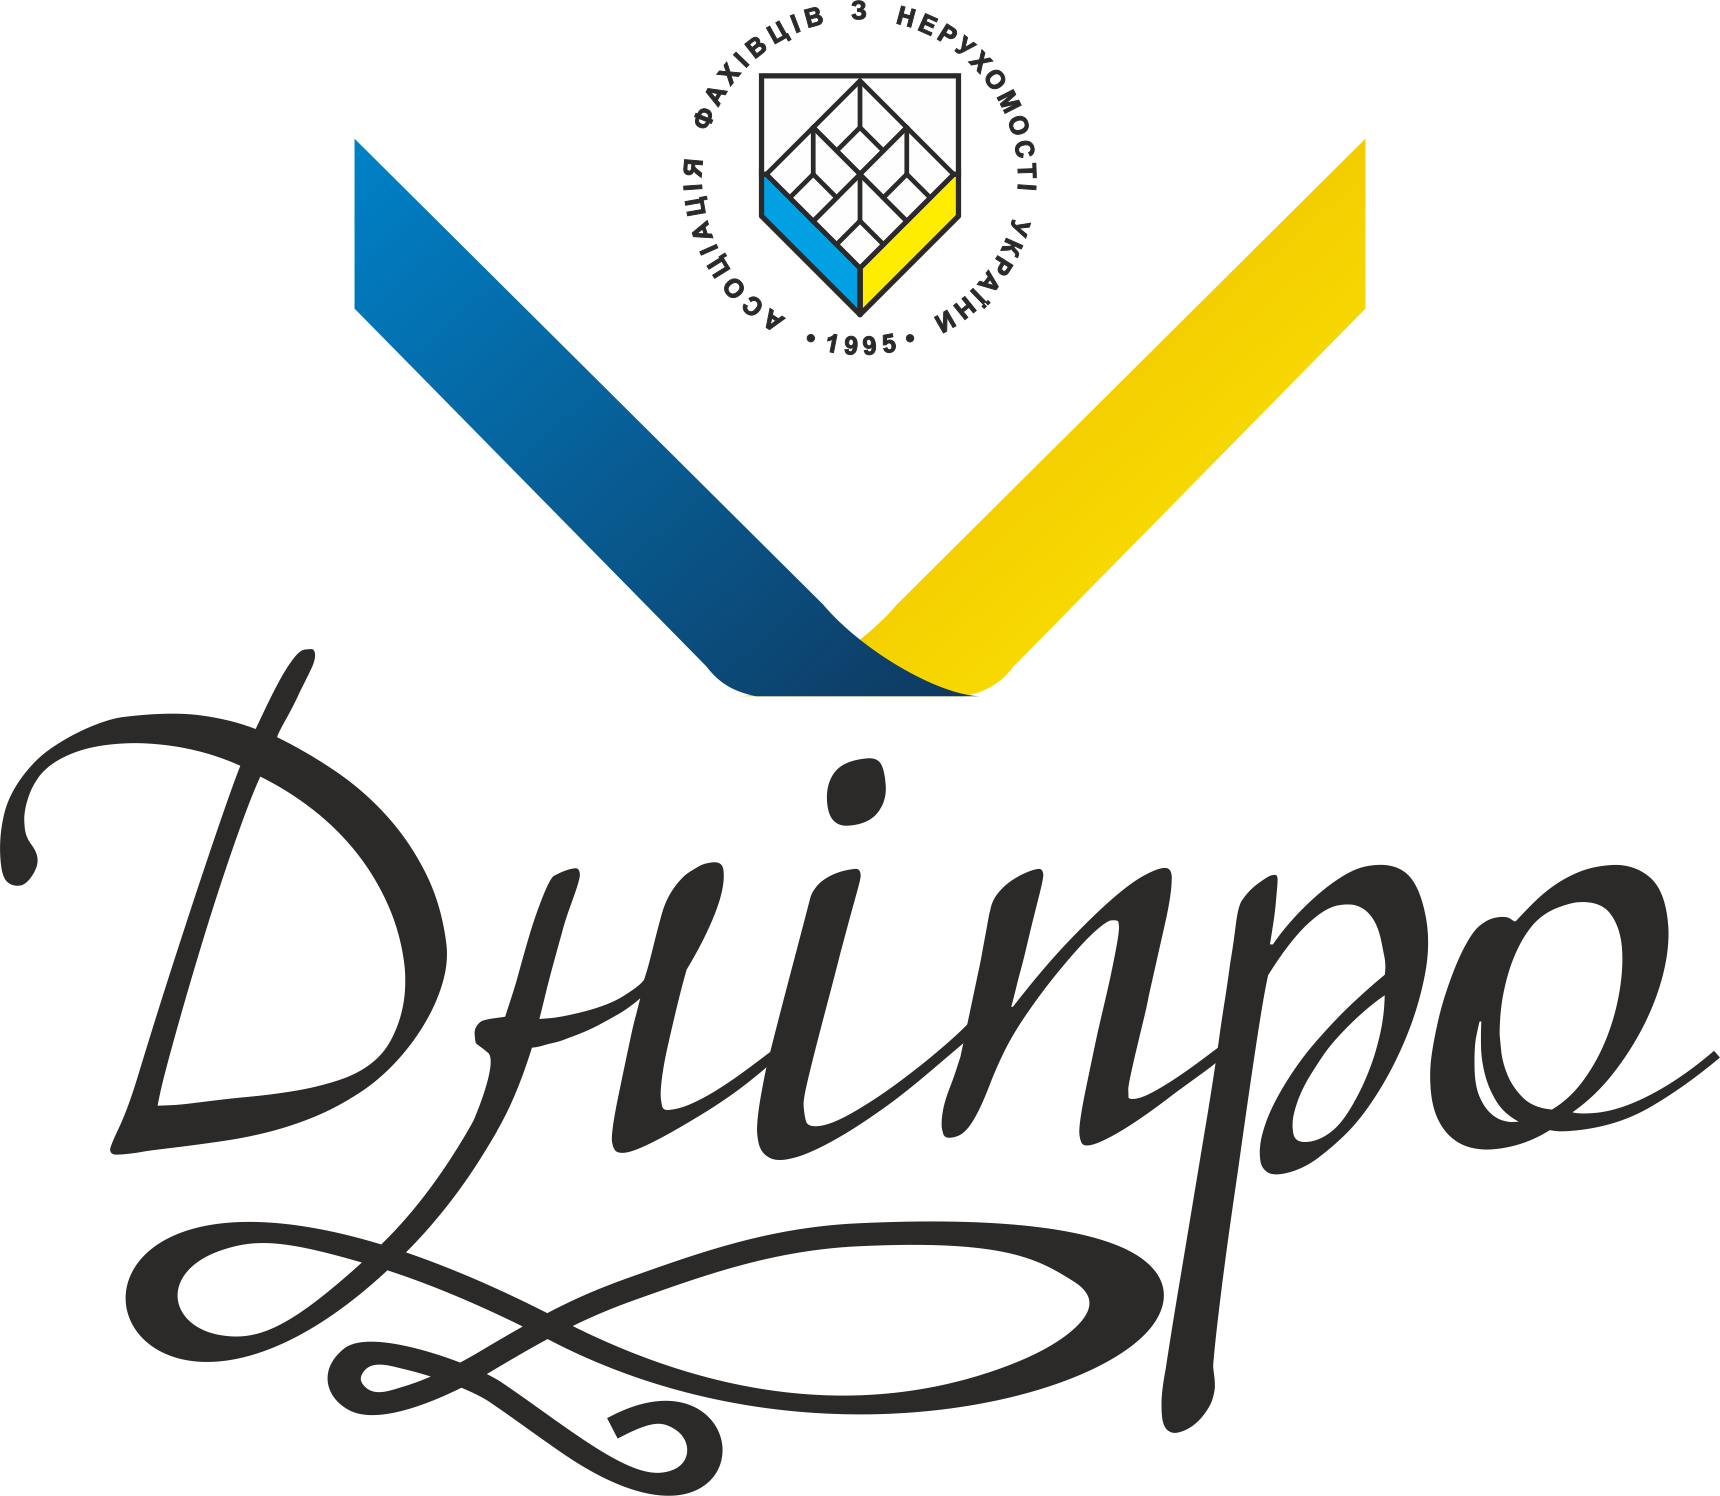 logo_Dnipro.png